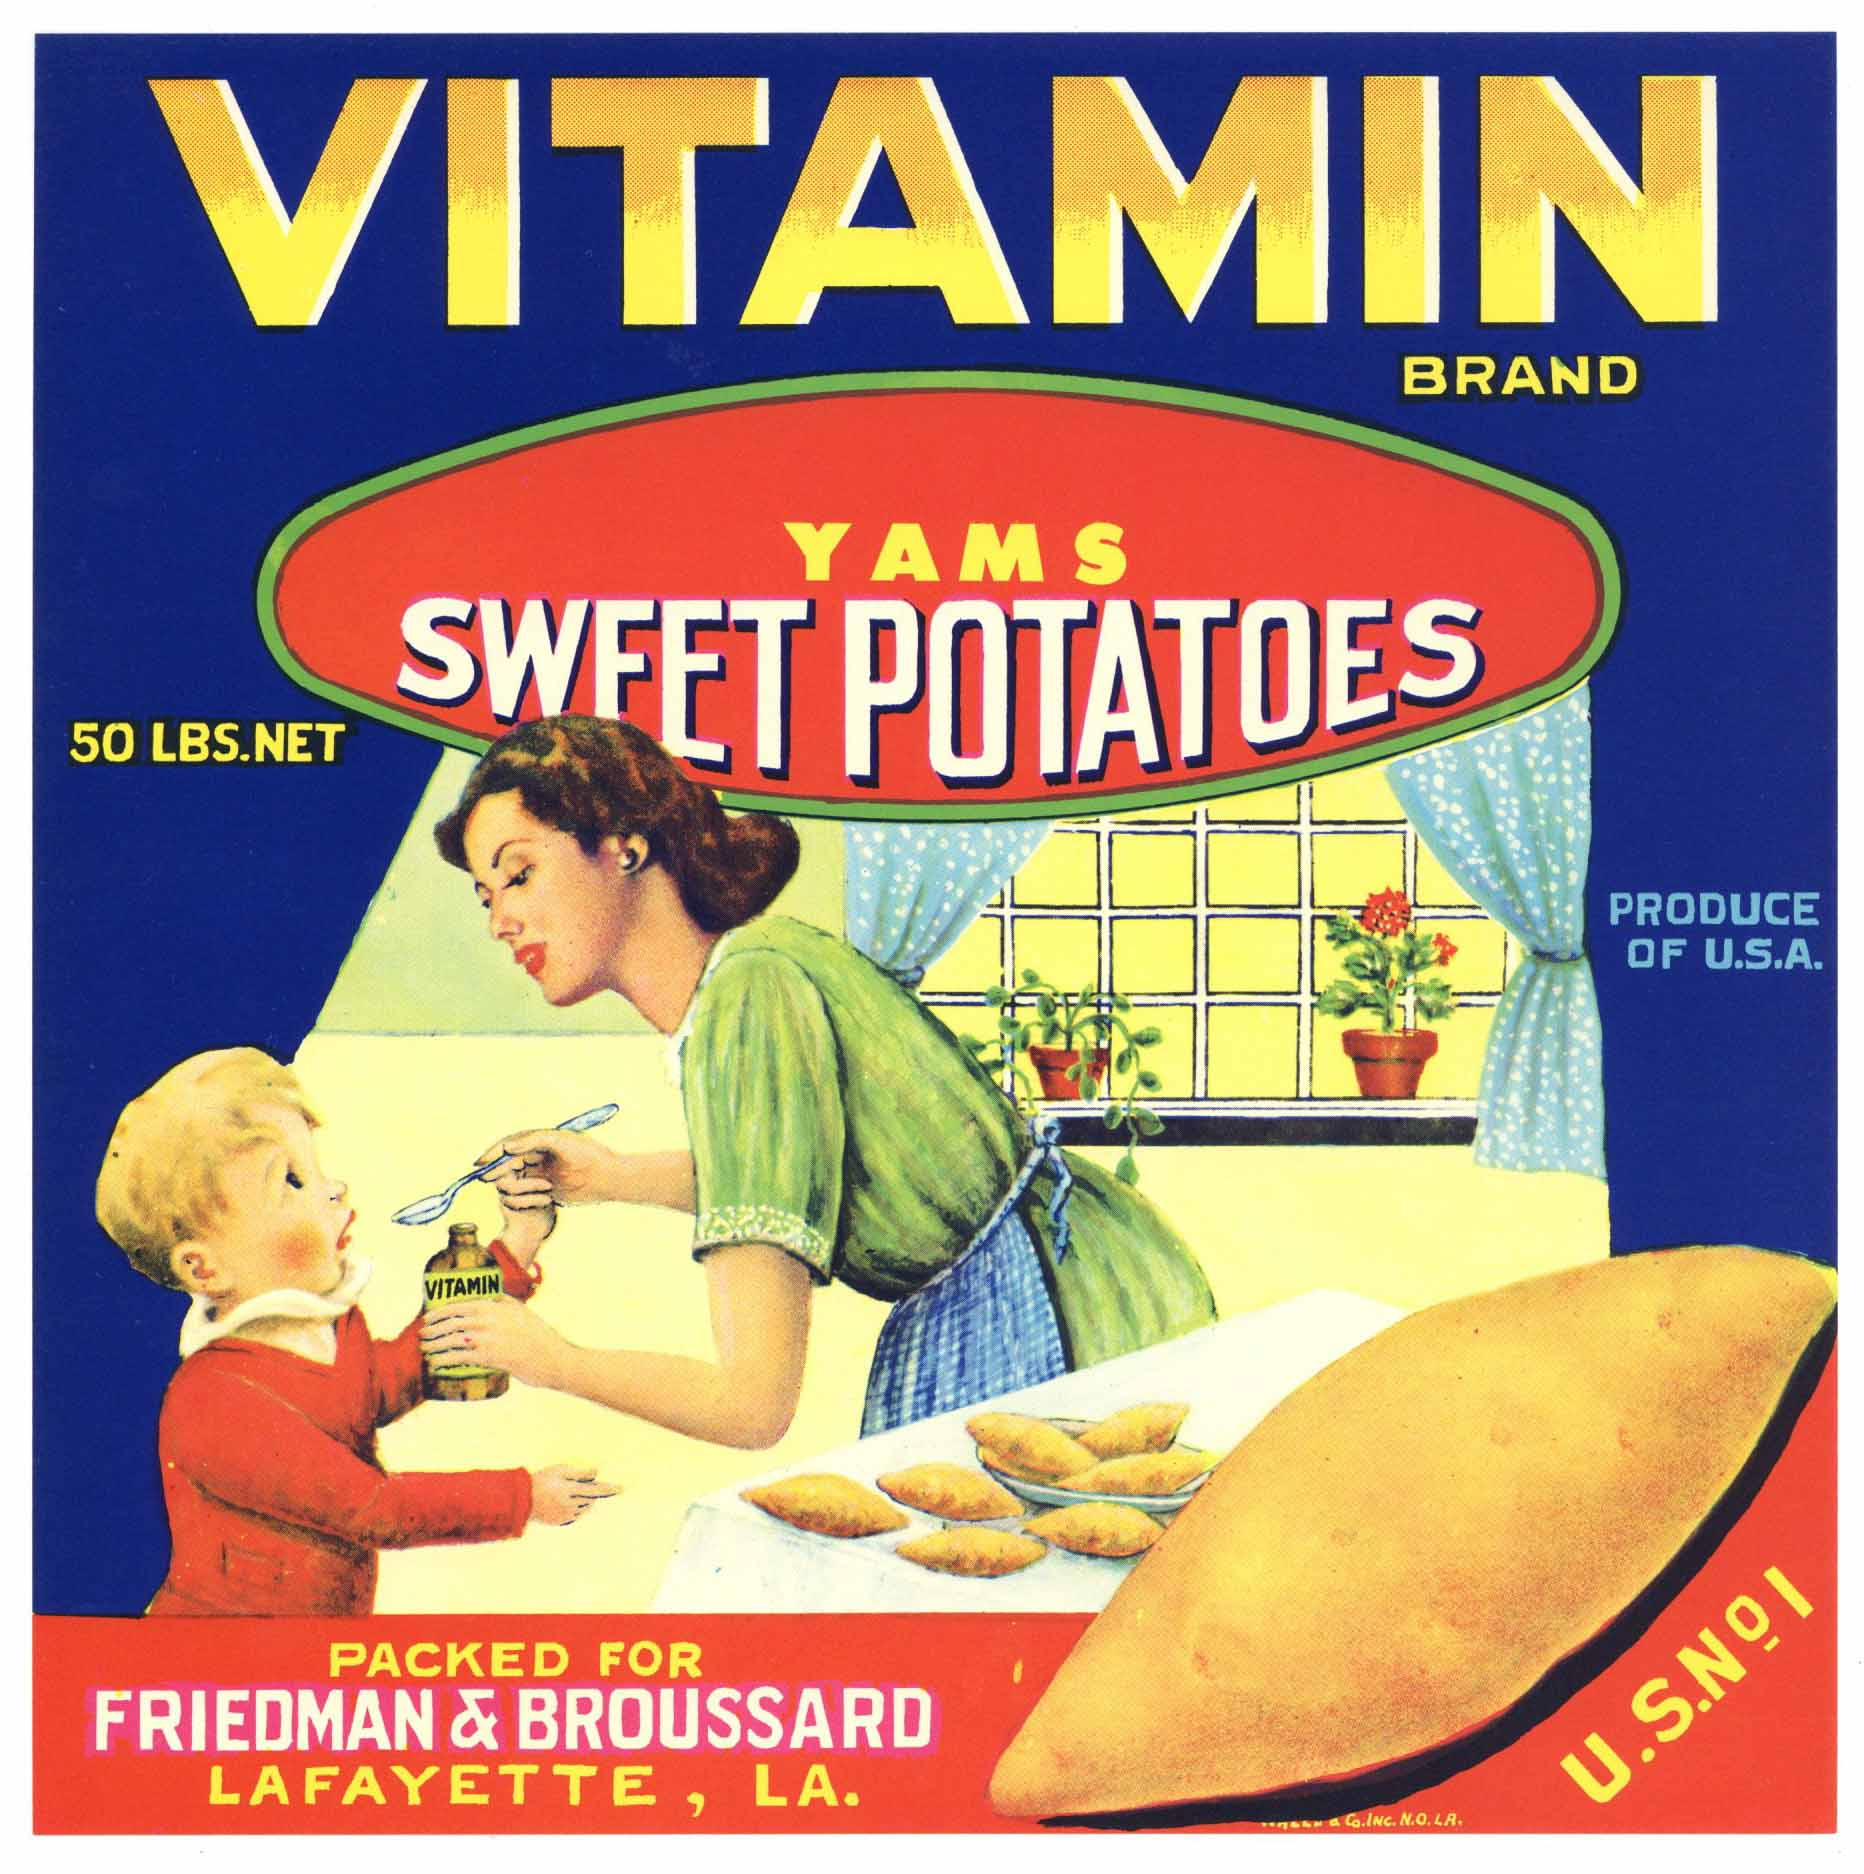 Vitamin Brand Vintage Lafayette Louisiana Yam Crate Label